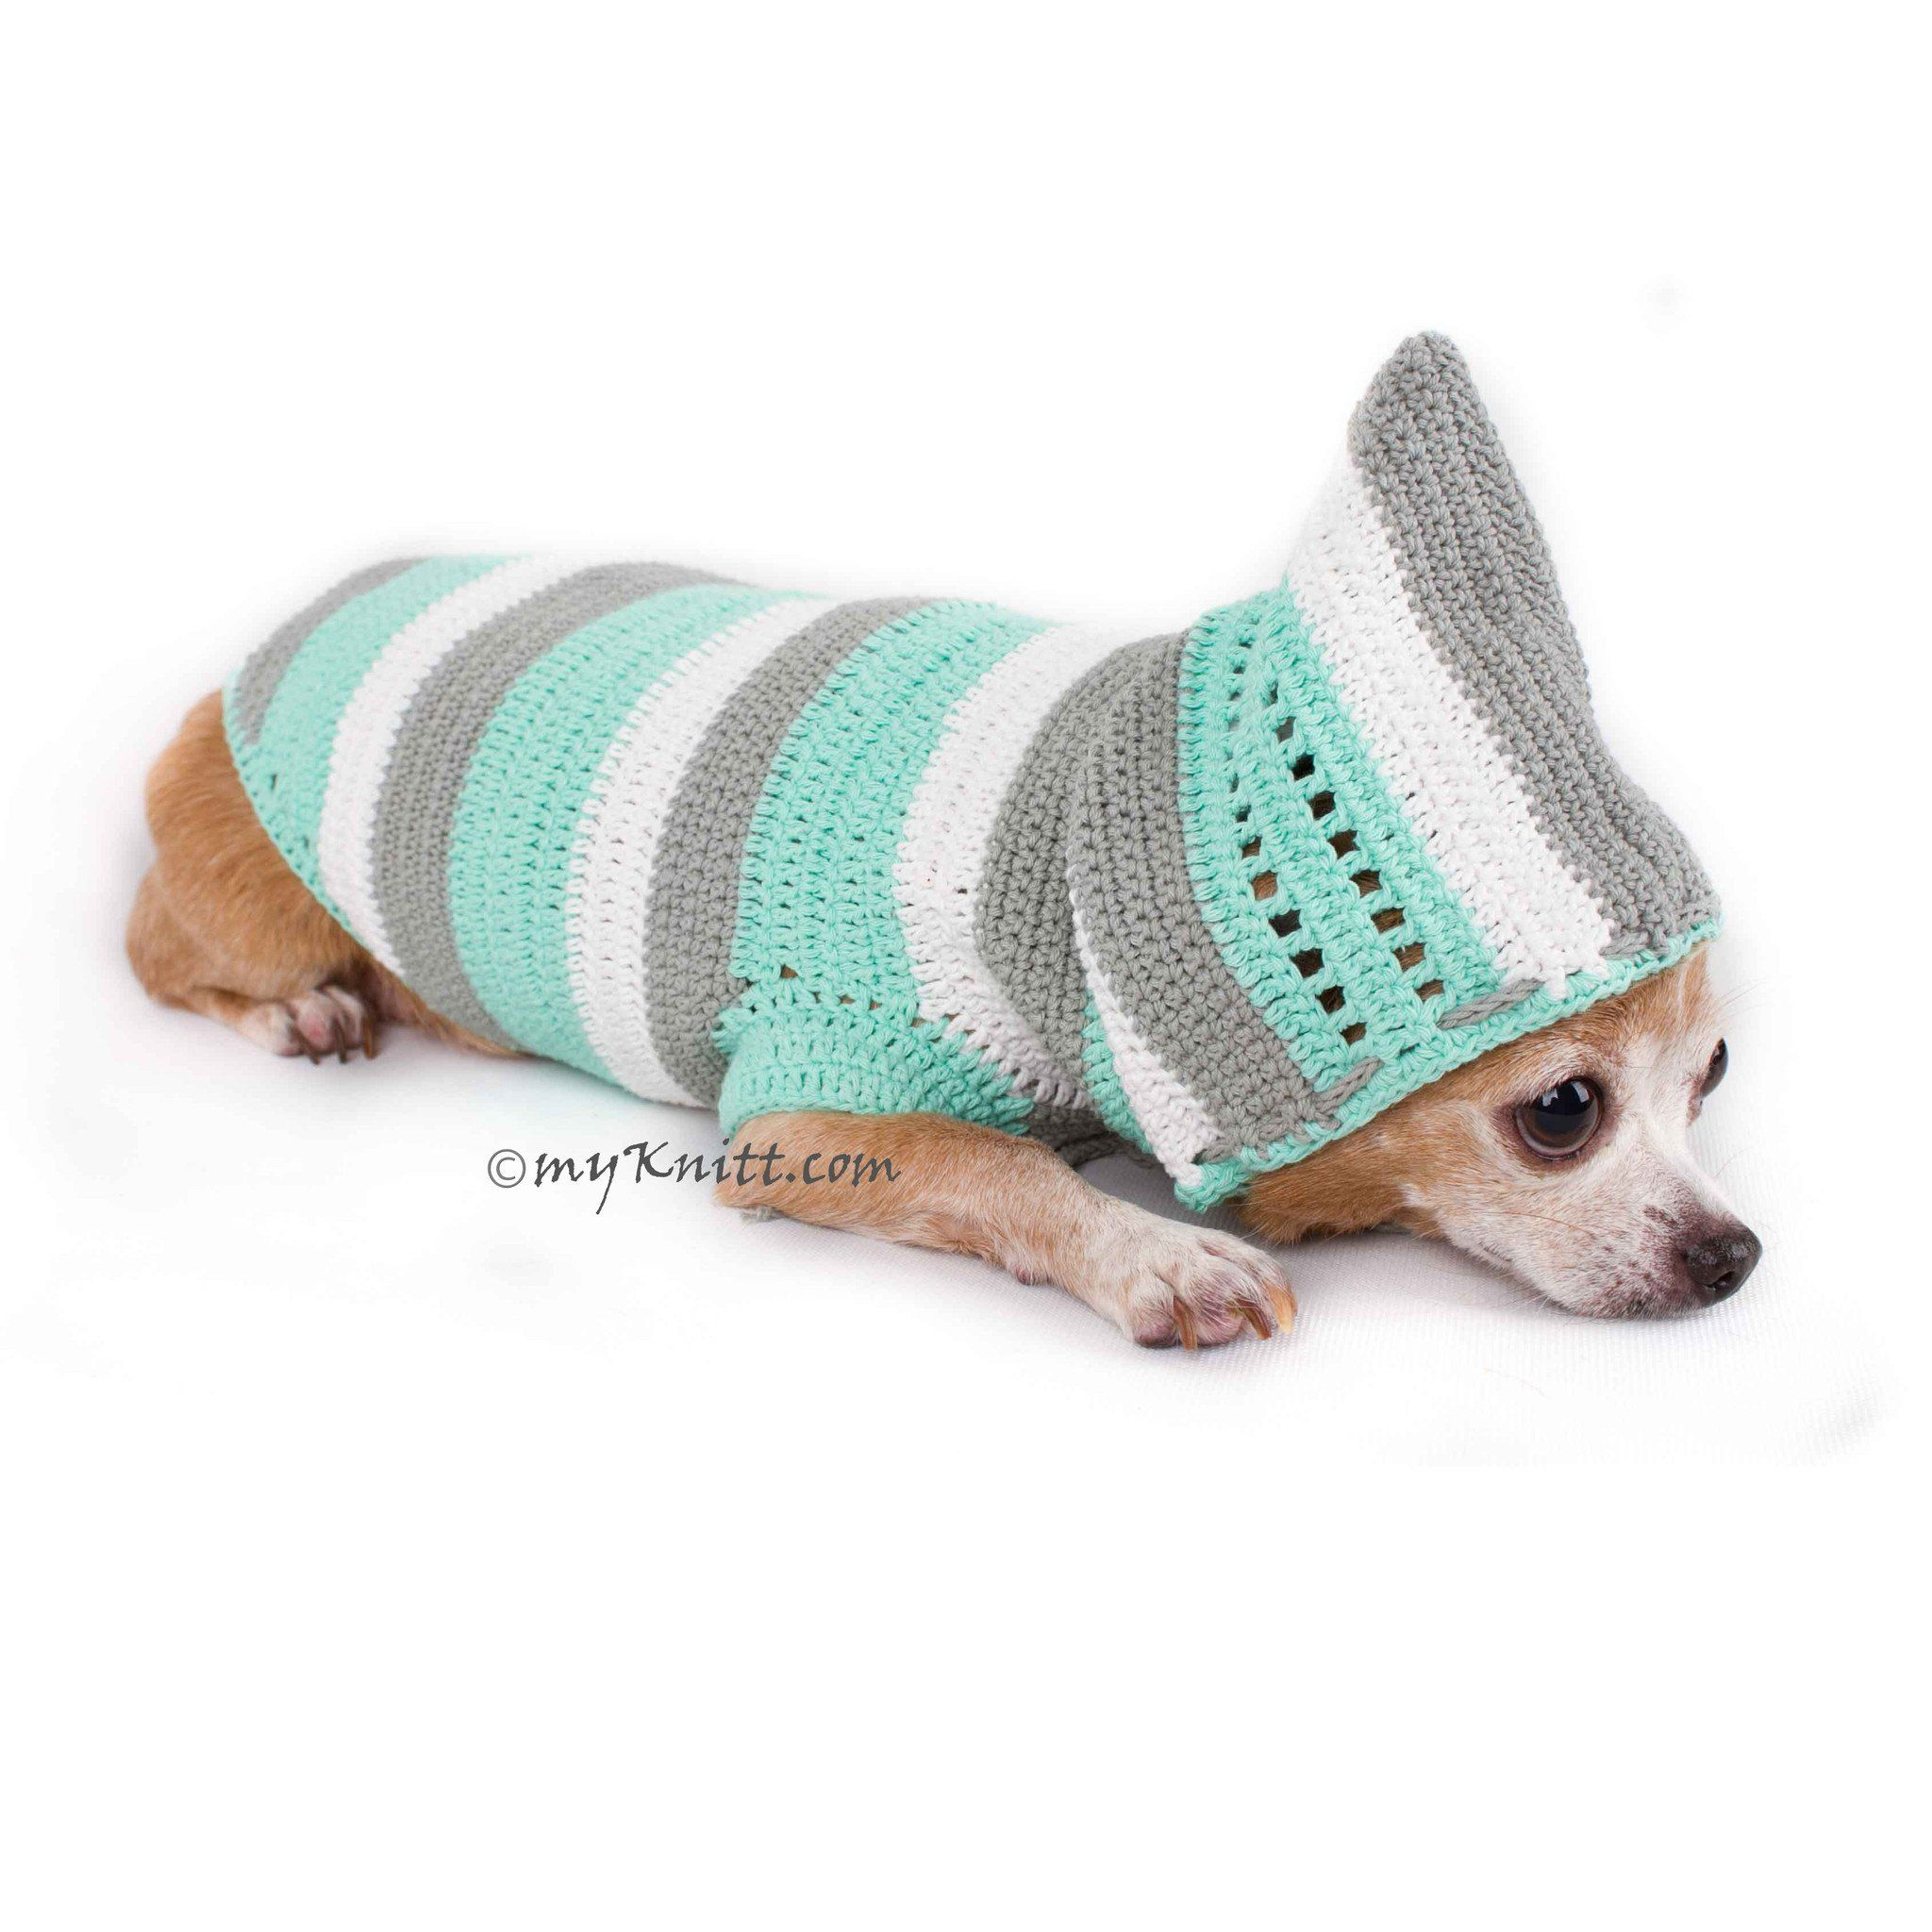 Warm Dog Hoodie Pastel Color Baby Handmade Knitted DK776 | mascotas ...